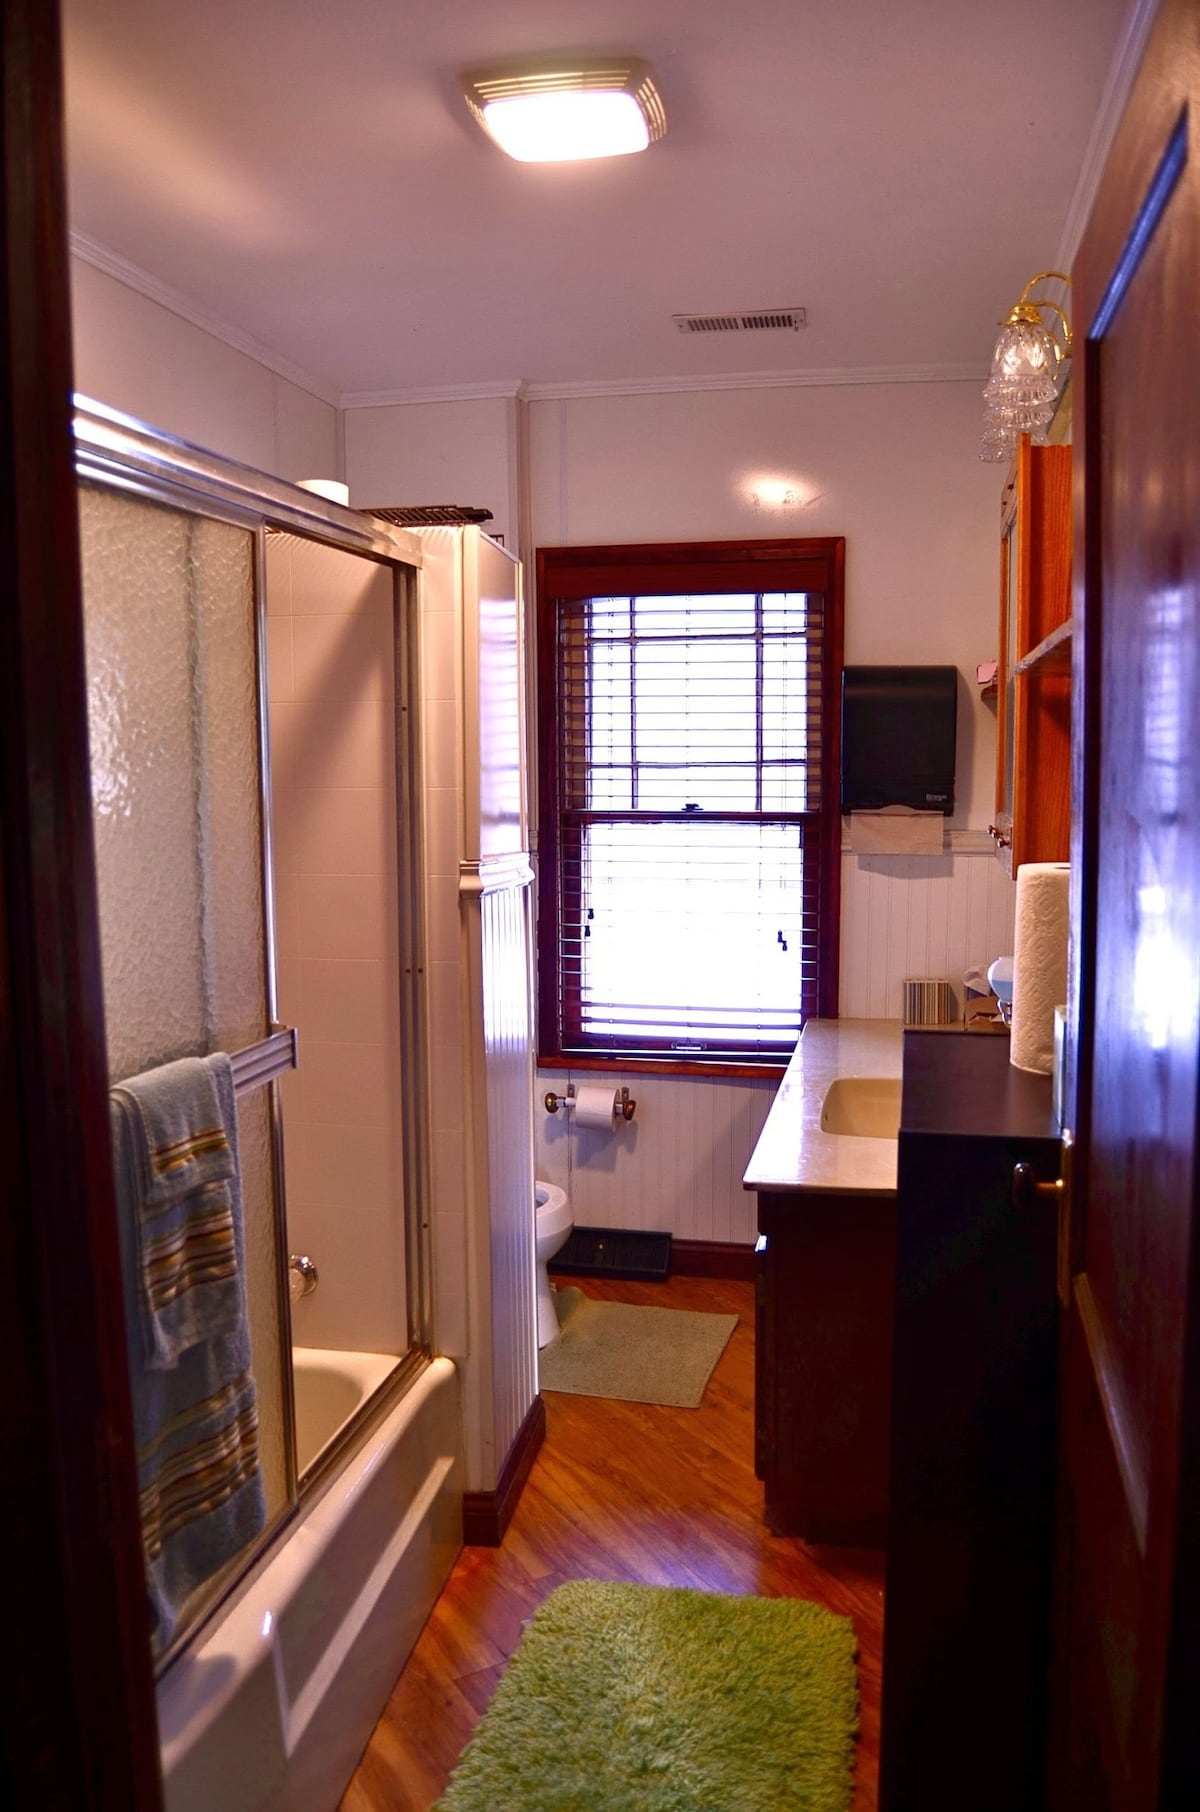 Common full bath on the second floor, directly across the hall from this room.